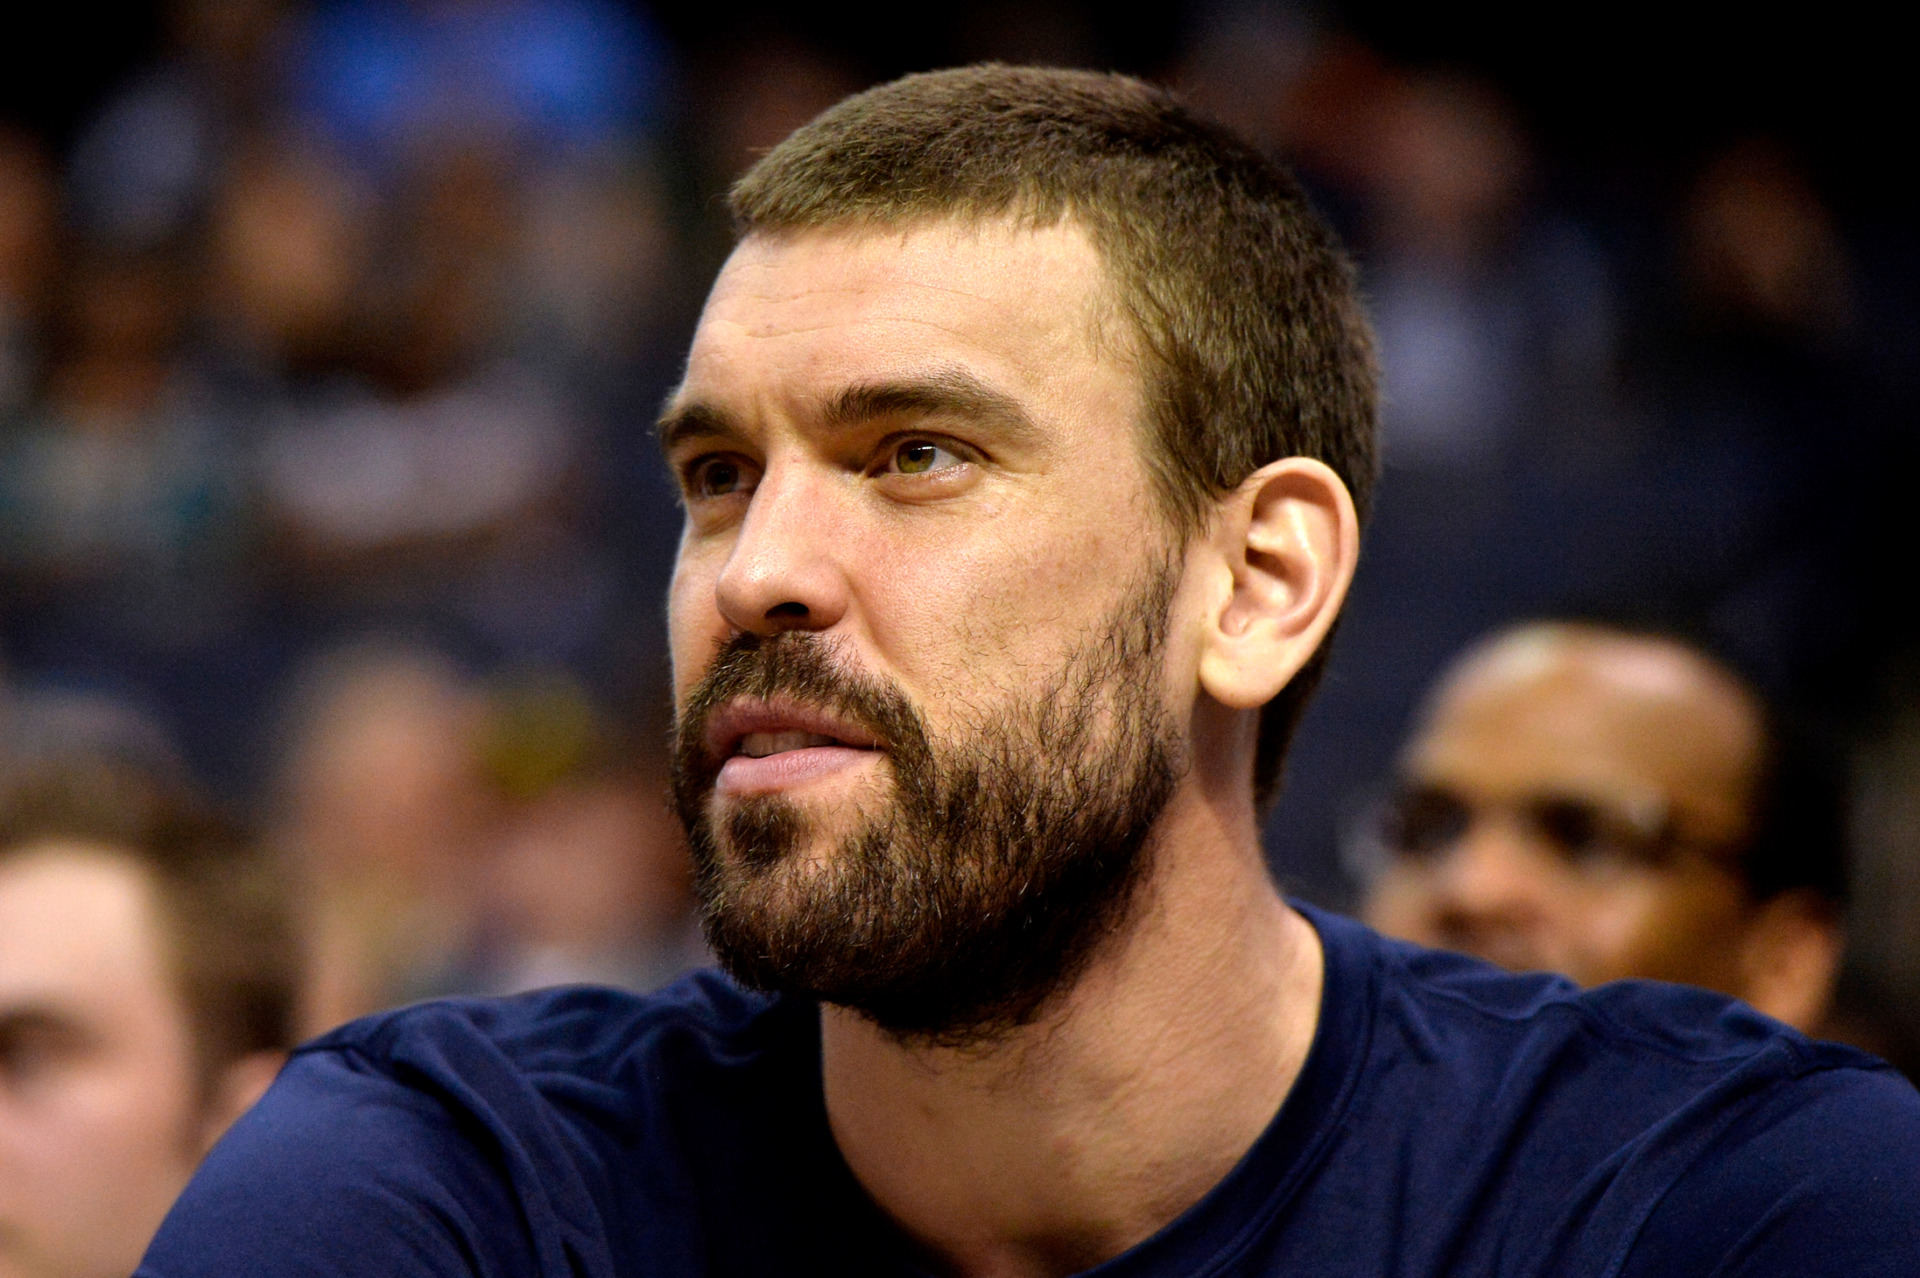 <span><strong>Memphis Grizzlies center Marc Gasol looks on from the bench in the first half of an NBA basketball game against the Minnesota Timberwolves on Tuesday, Feb. 5, in Memphis.</strong> (Brandon Dill/Associated Press)</span>